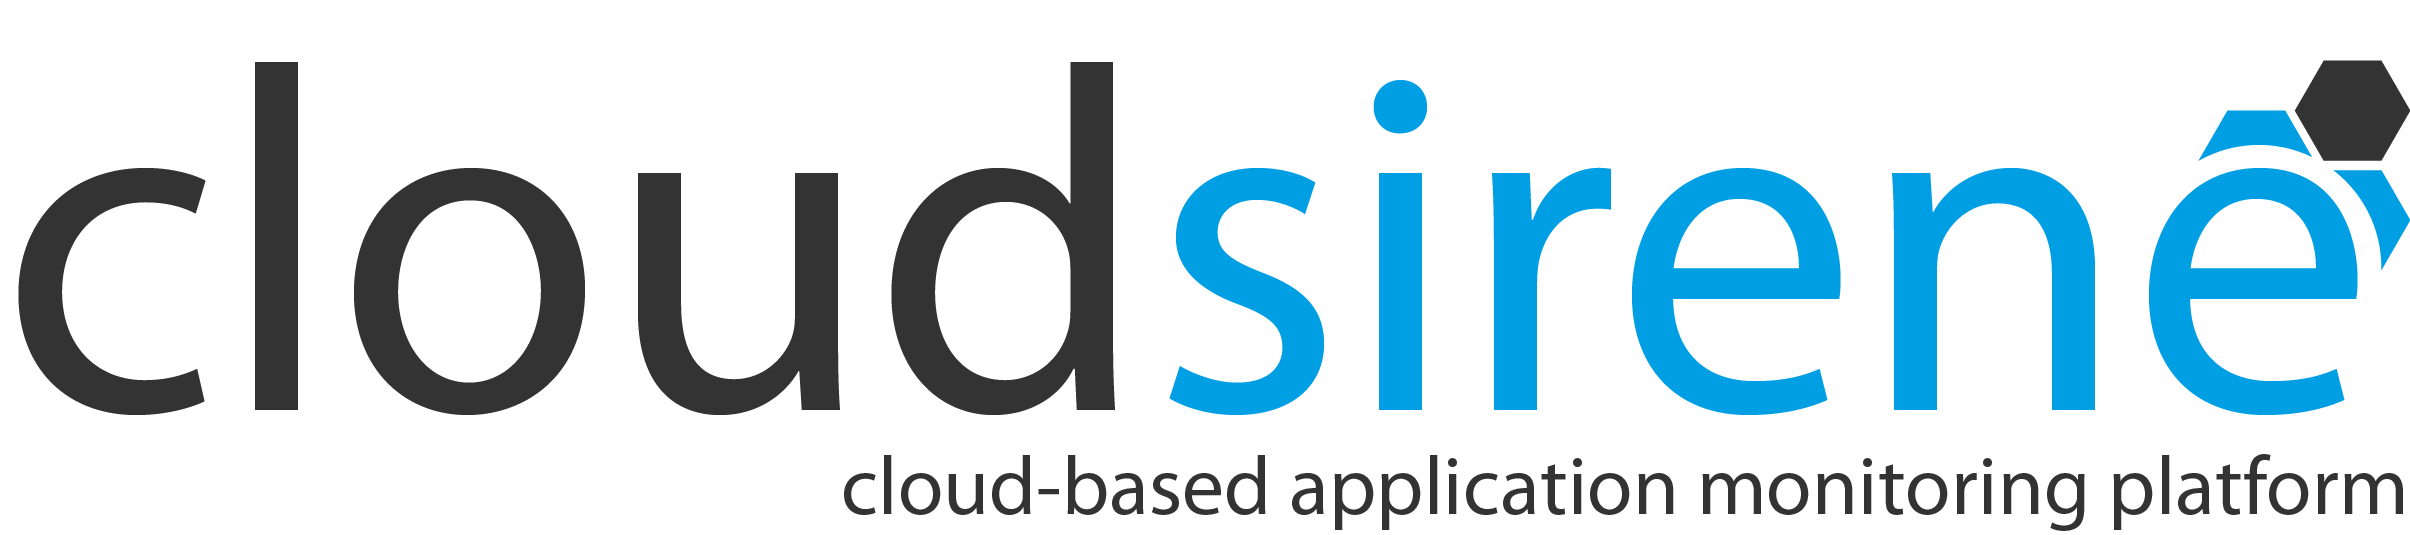 cloudsirene logo